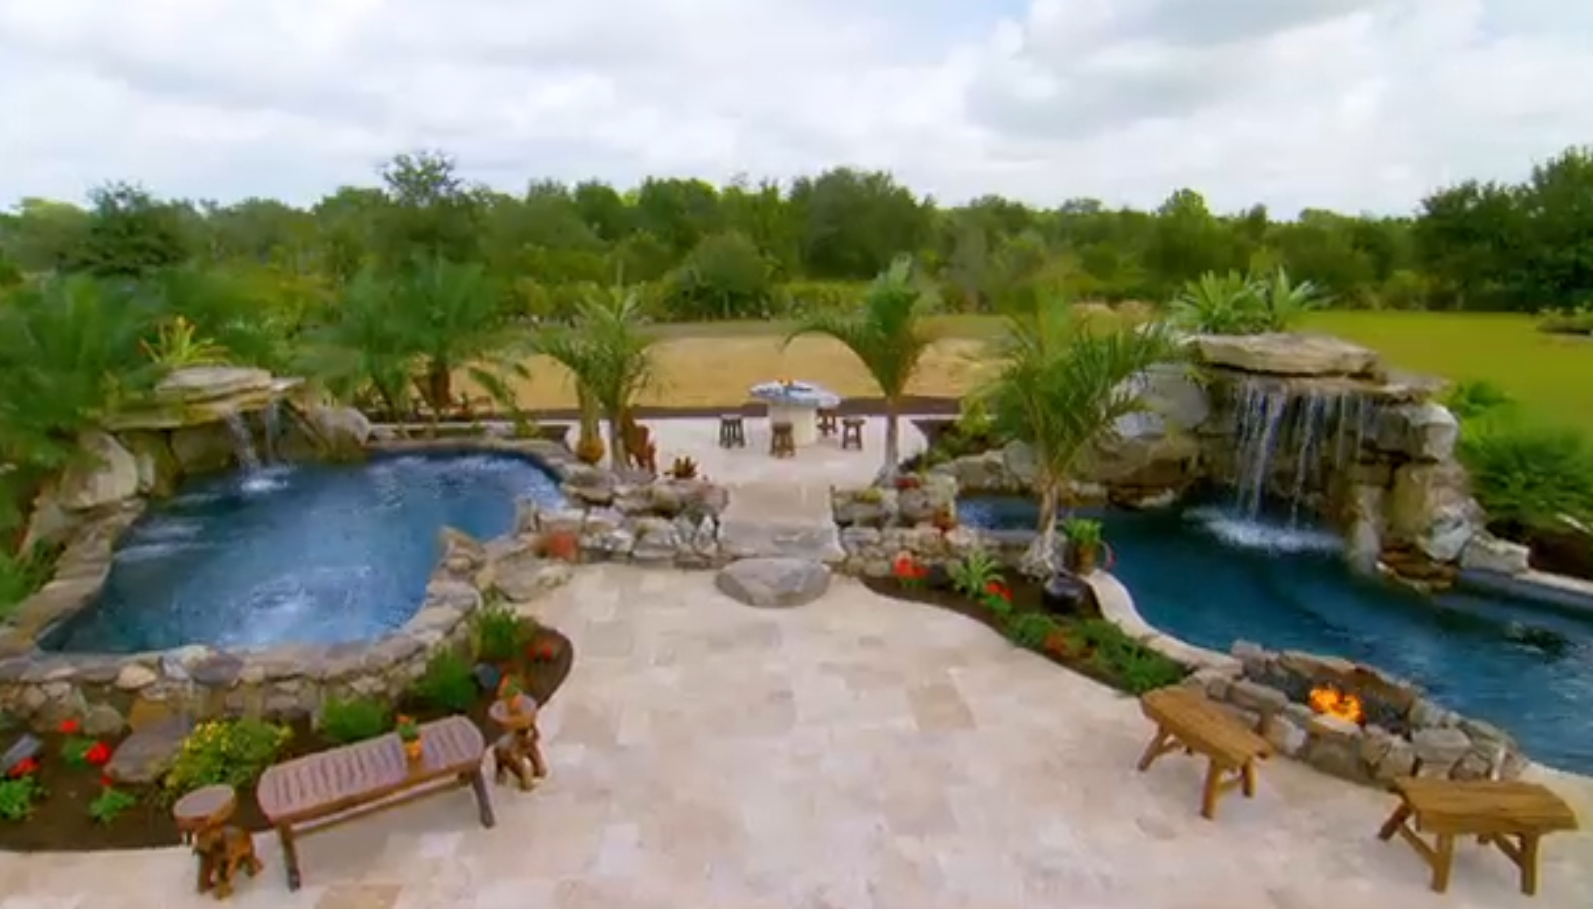 Animal planet 39 s insane pools behind the scenes the for Pool show animal planet